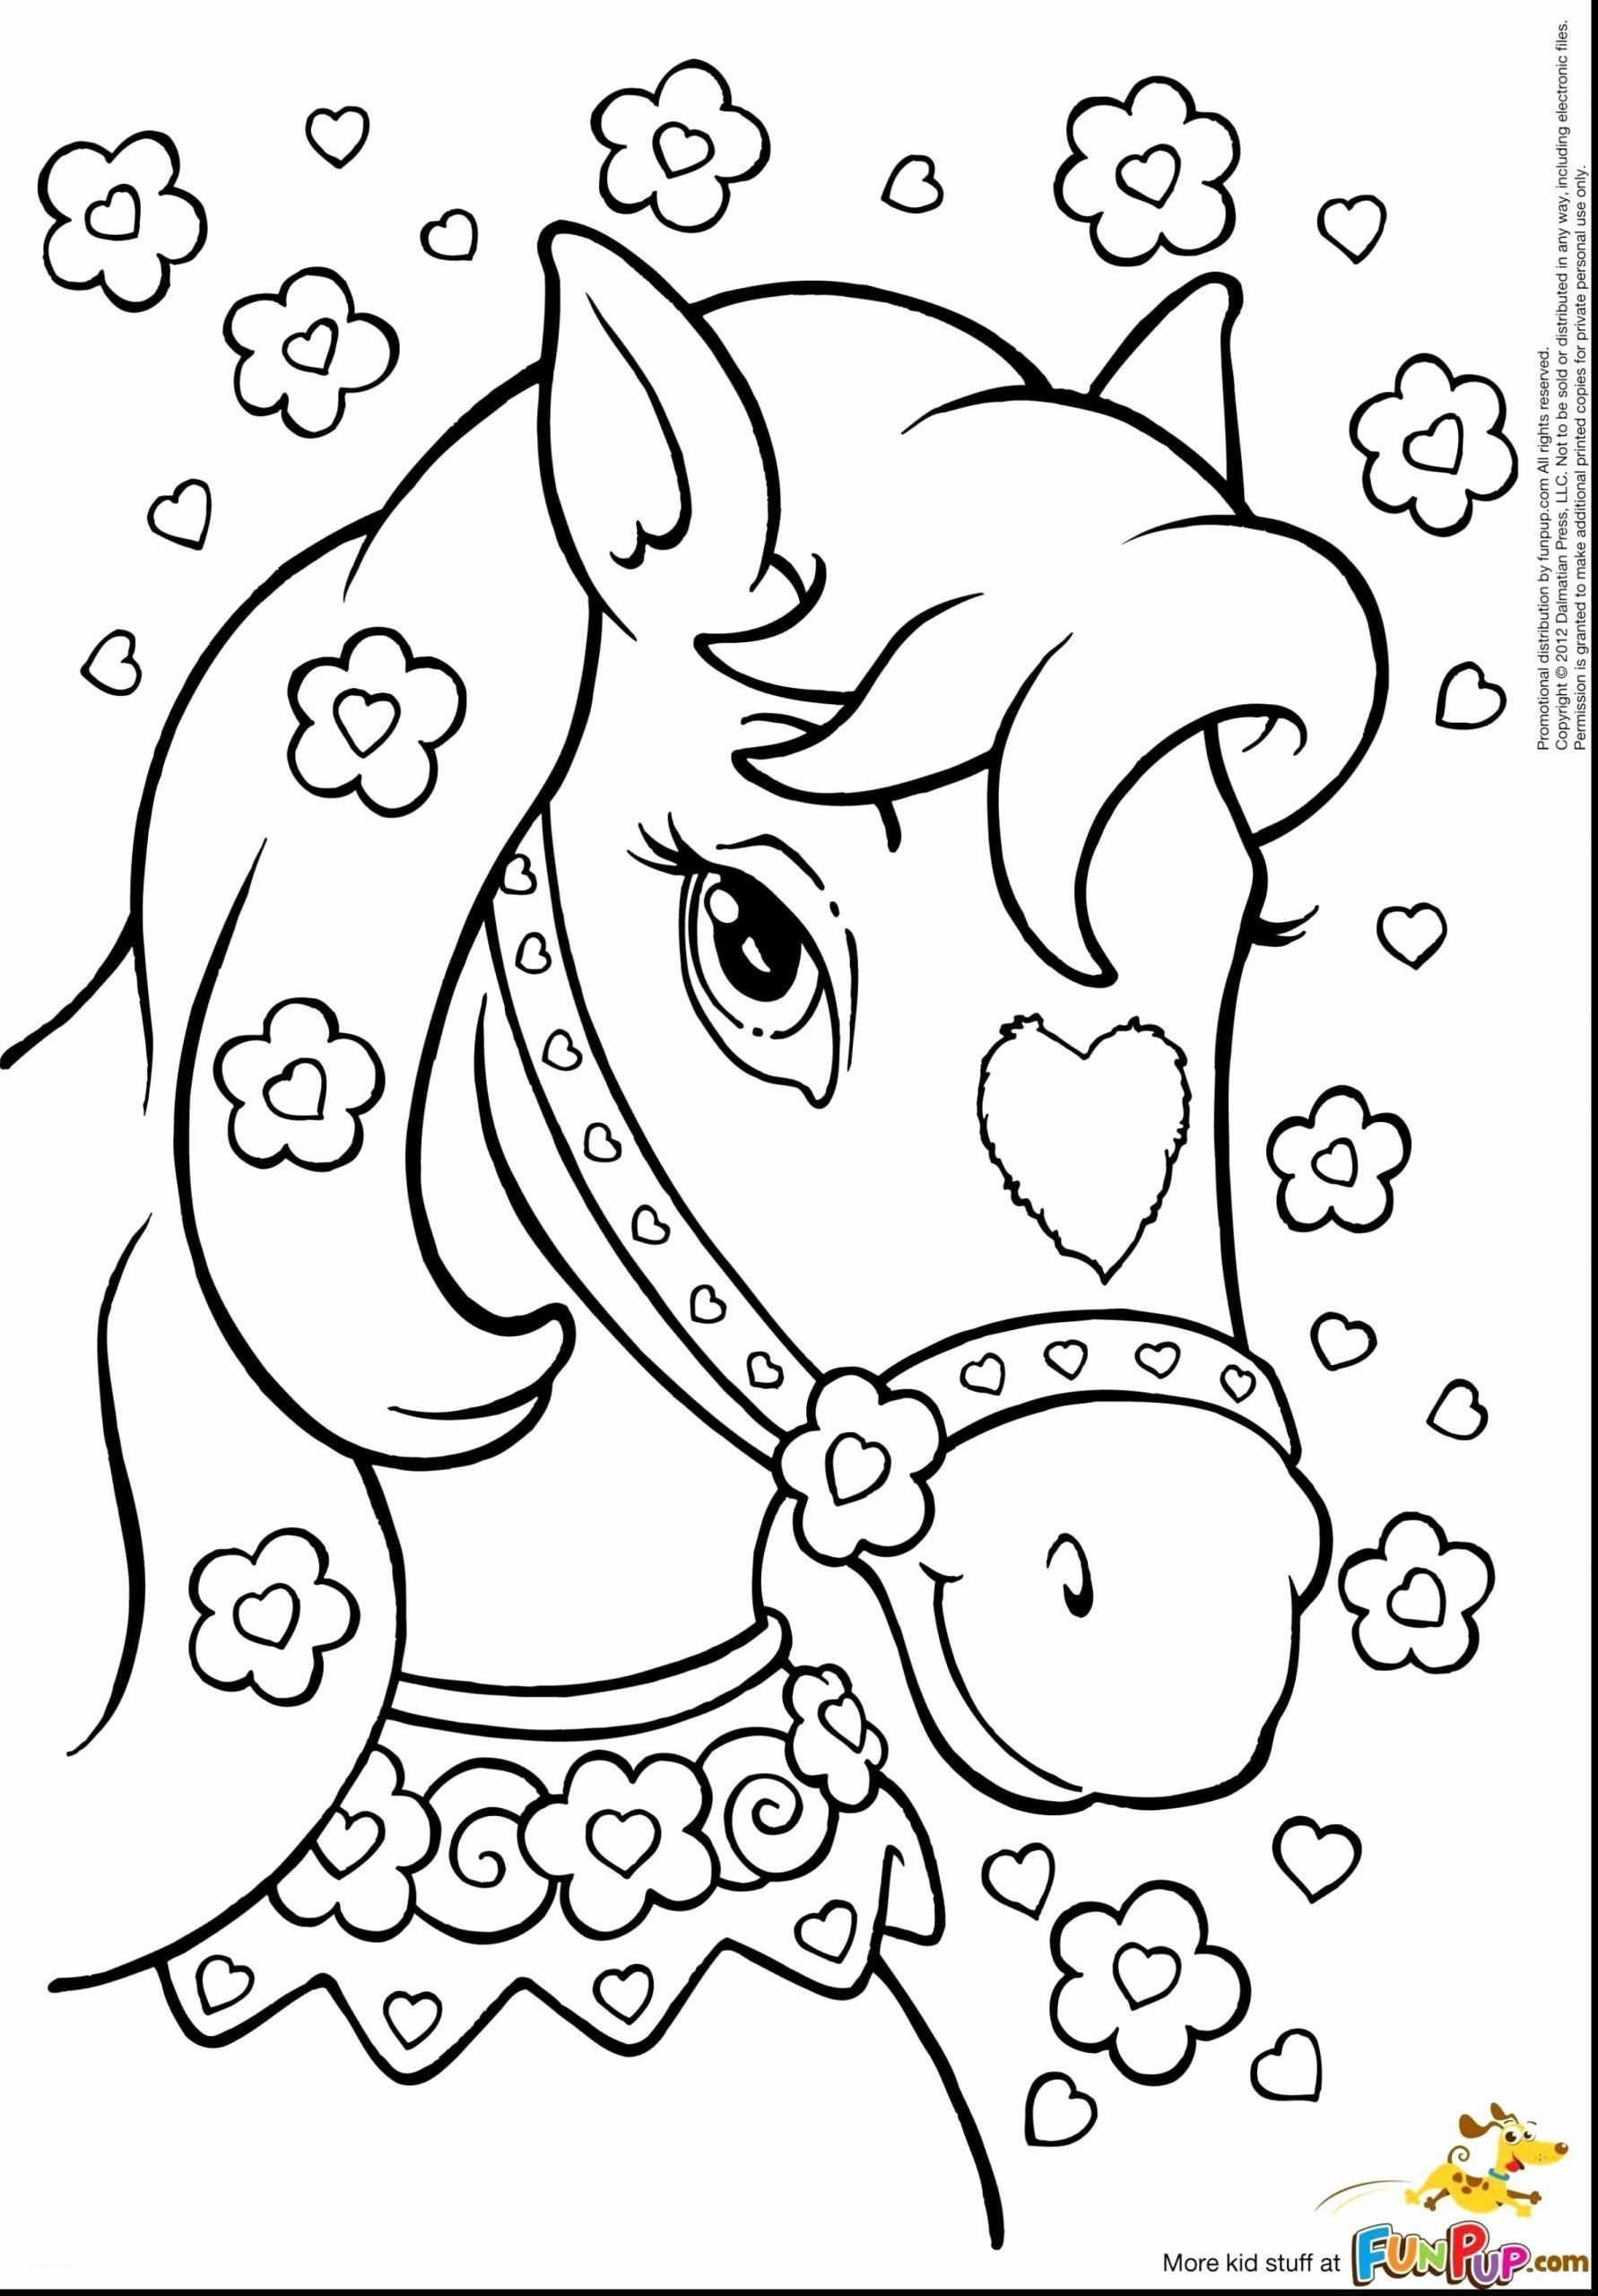 Animals Printable Coloring Pages New Coloring Pages Printable Coloring Pages For Toddlers Art Unicorn Coloring Pages Horse Coloring Pages Fall Coloring Pages